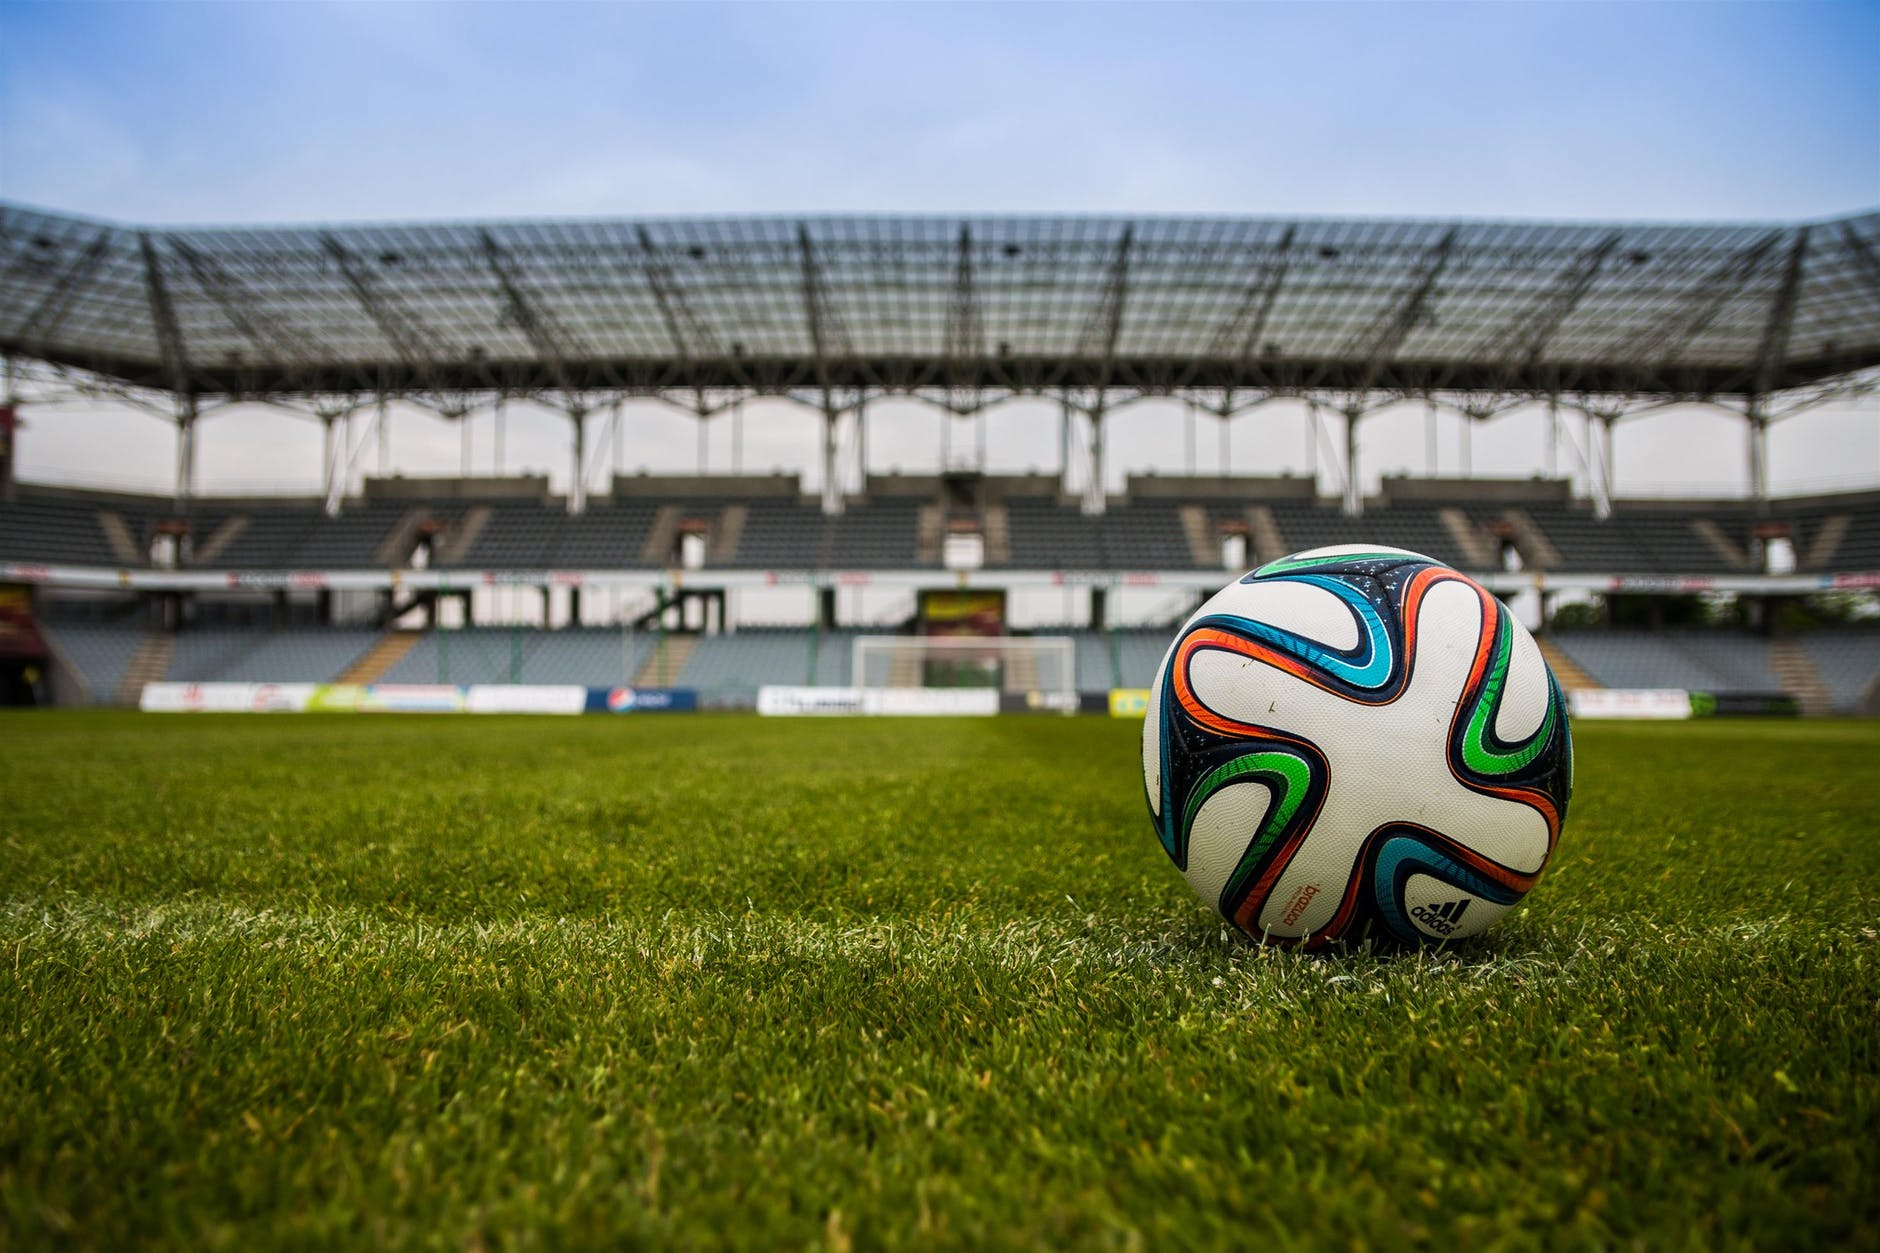 Soccer ball in field representing professional sports services